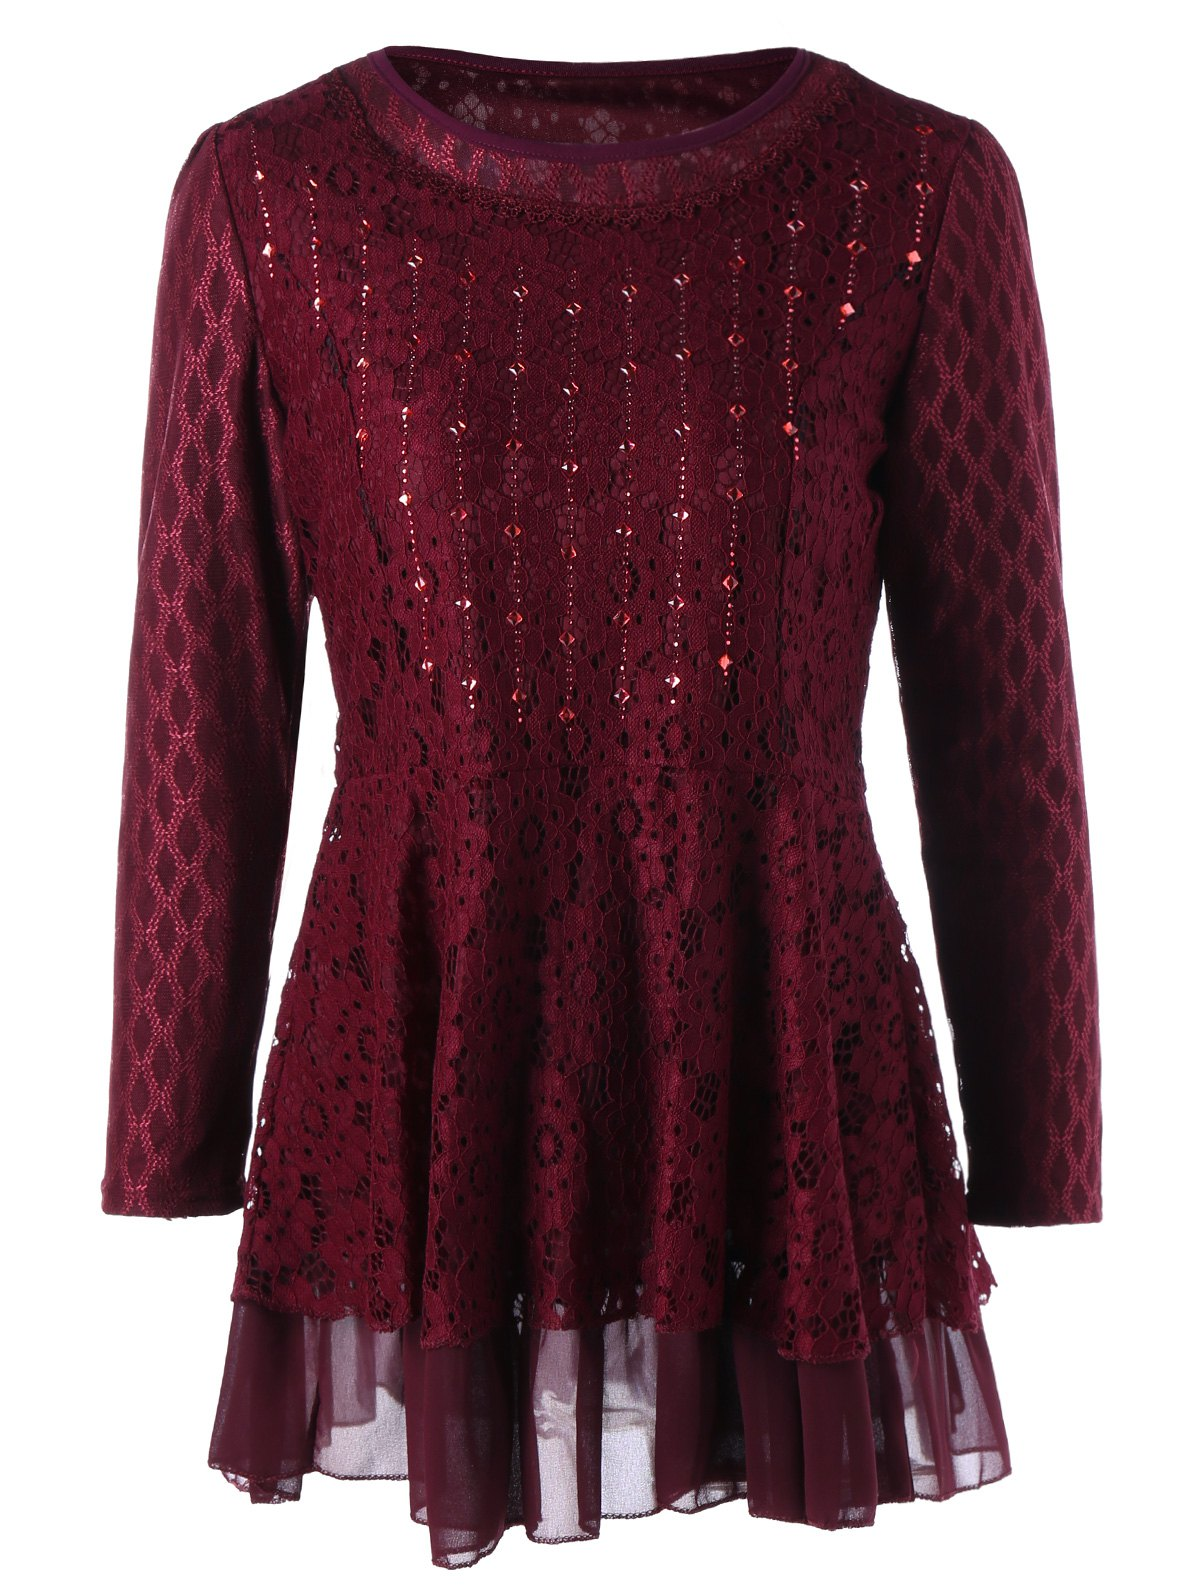 Plus Size Embellished Layered Lace Peplum Top - WINE RED XL